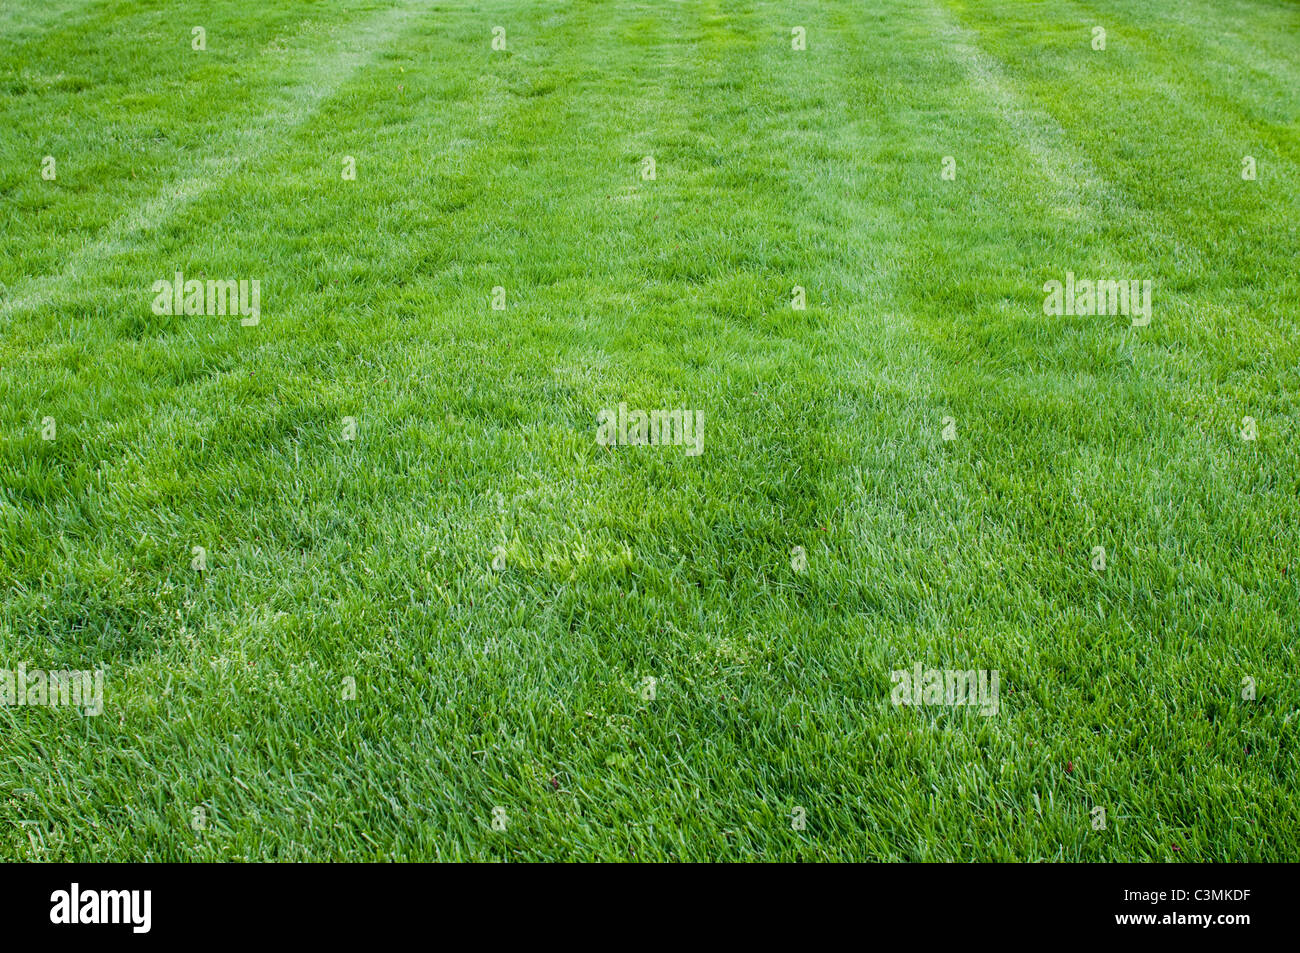 A lawn in the USA. - Stock Image